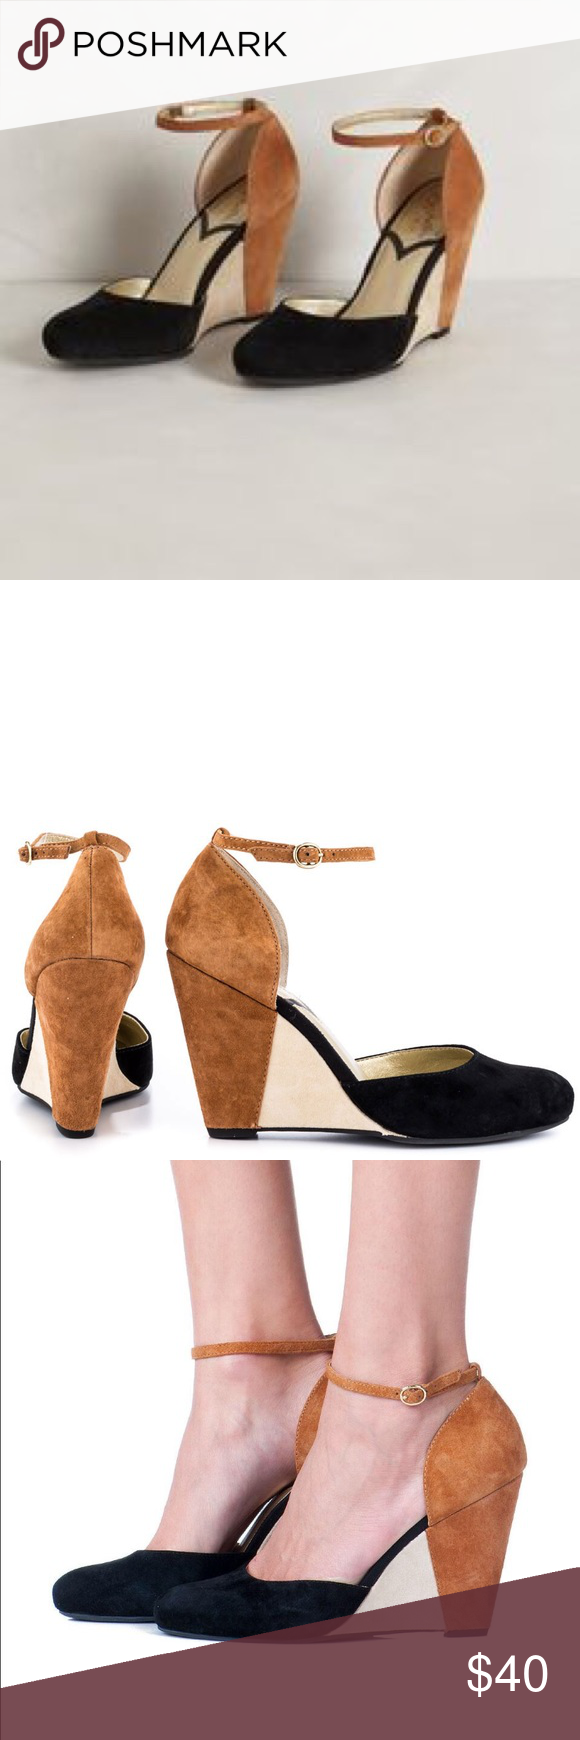 0fe0cadec4 Seychelles Fight Fire With Fire Wedge Pump - 9 EUC Seychelles Wedge Pumps  in suede. So sad to part with this super cute pumps